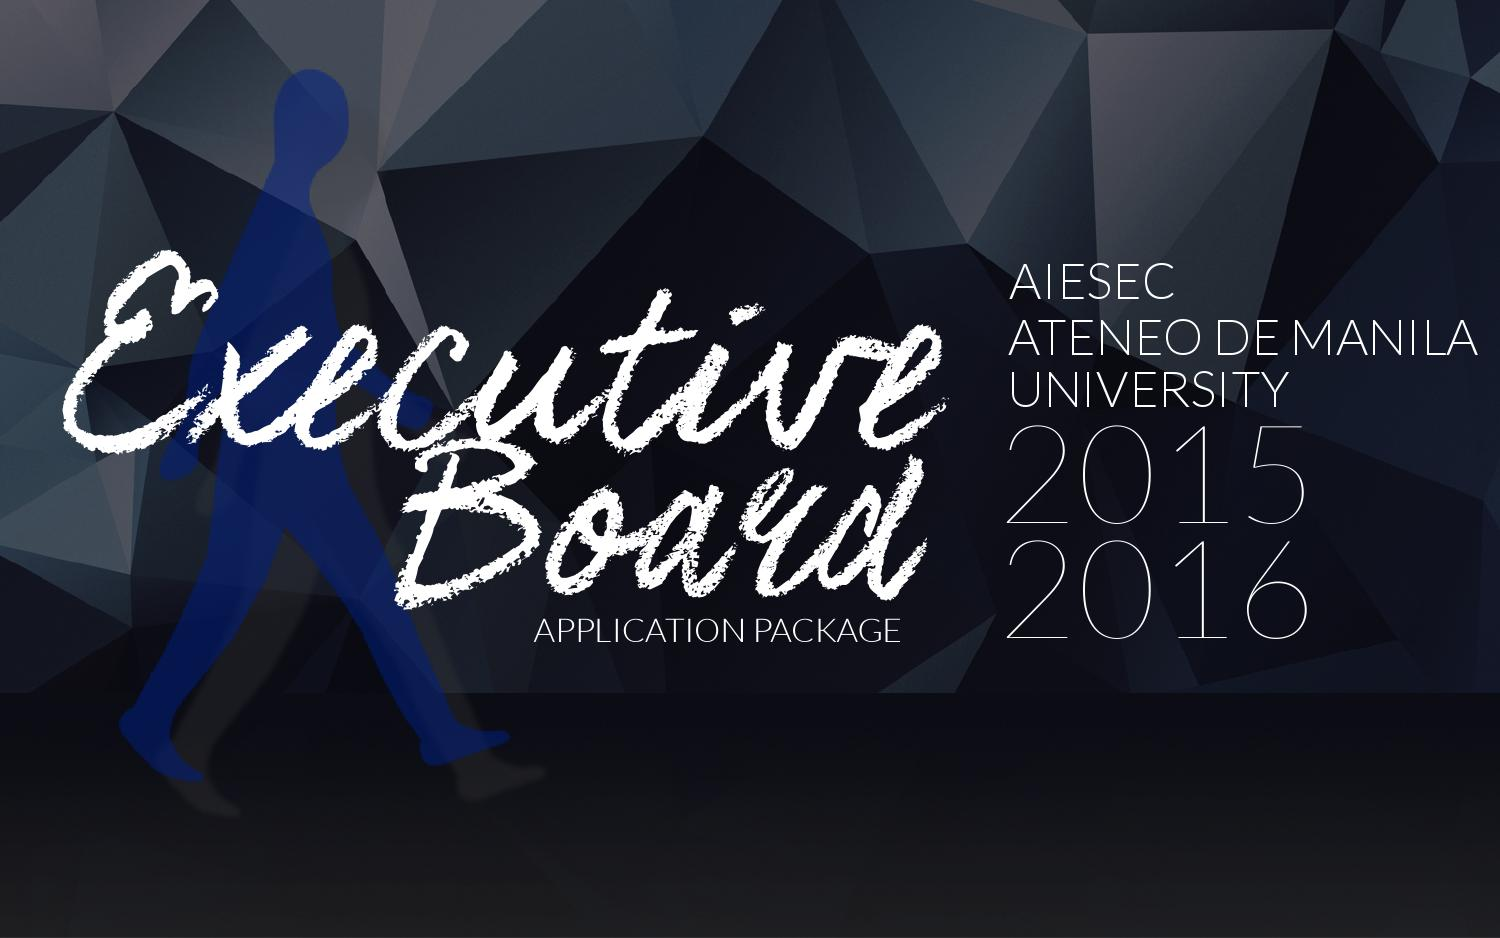 ateneo application essay Embed our college application form template into your website to easily collect important student information, application essays, and more.